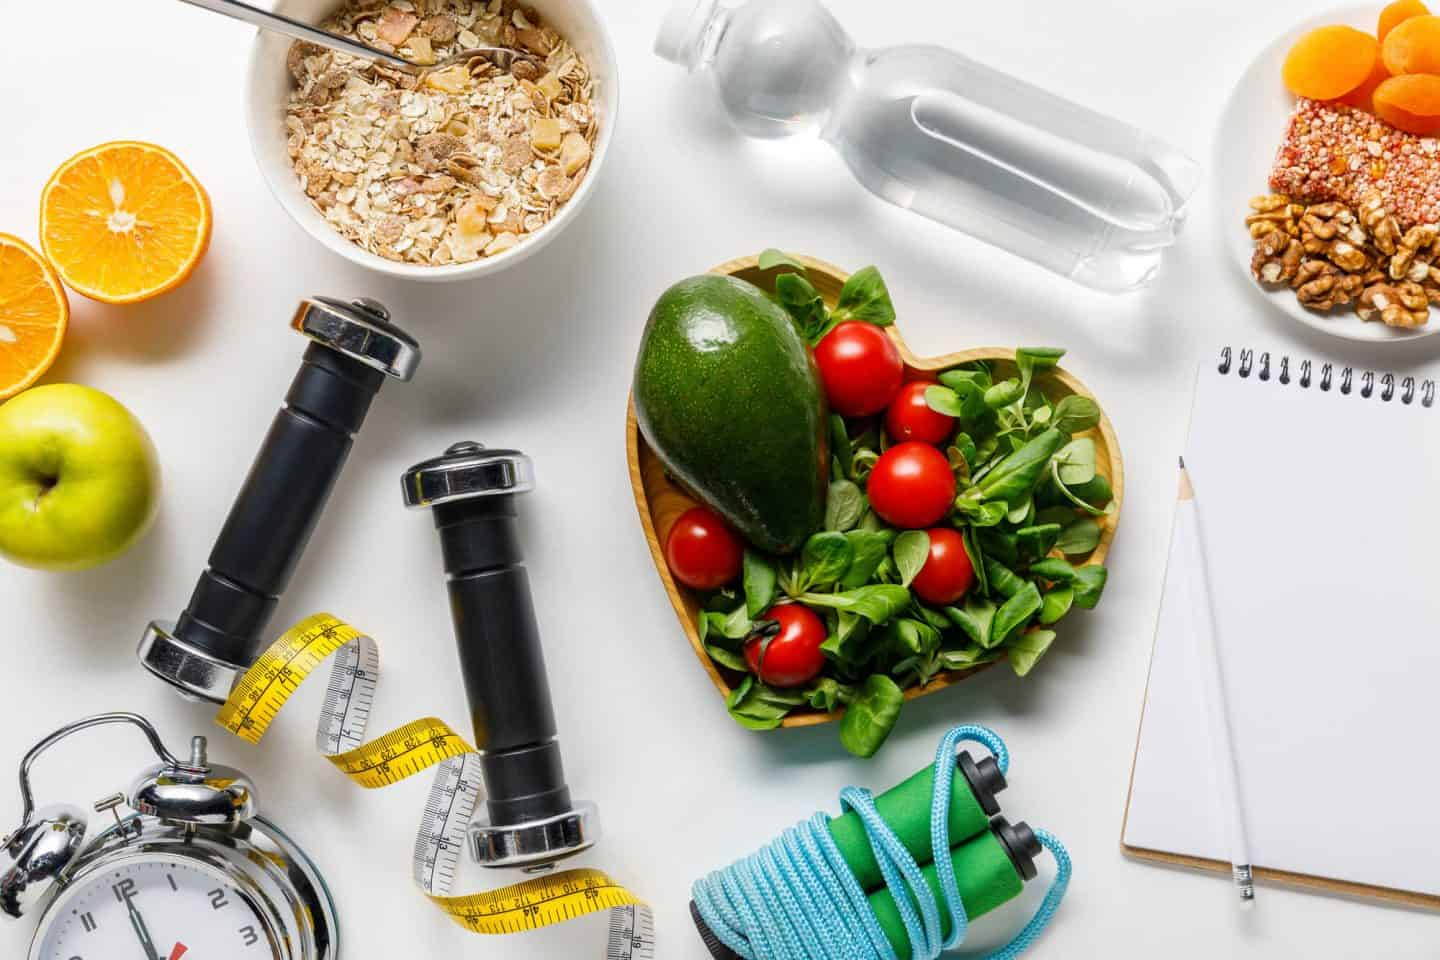 Tips to put you on the right weight loss path